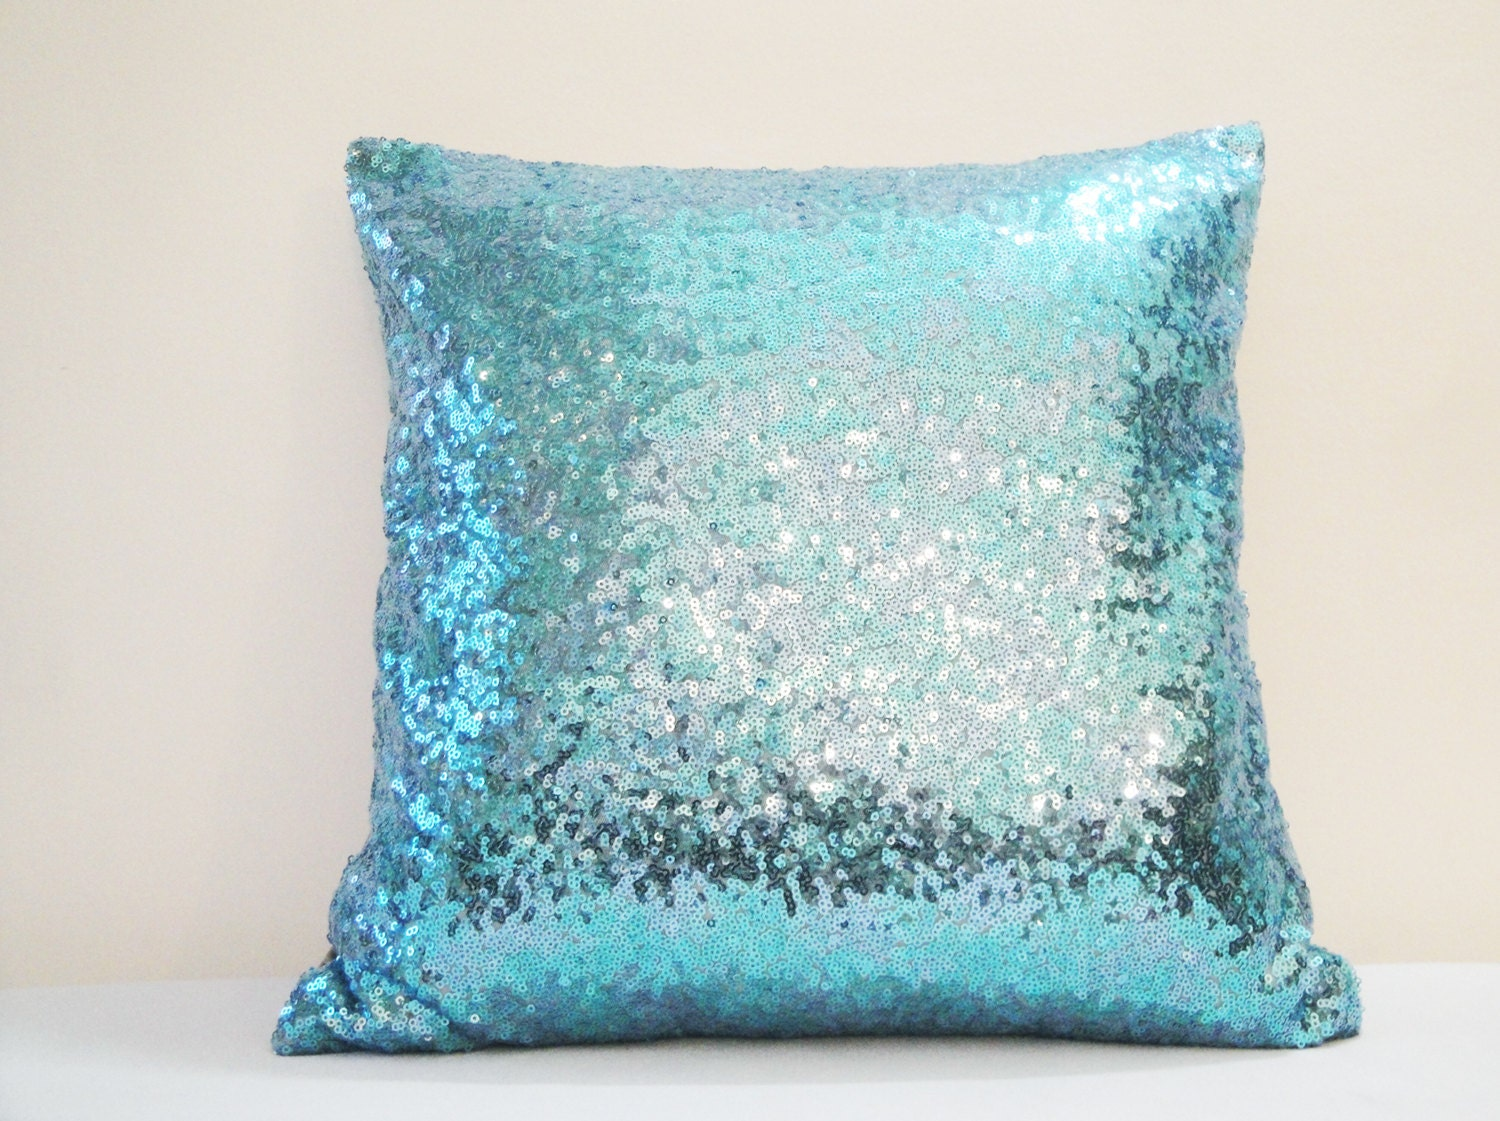 Shiny Turquoise Blue Pillow Cover Holiday Decor Sequin